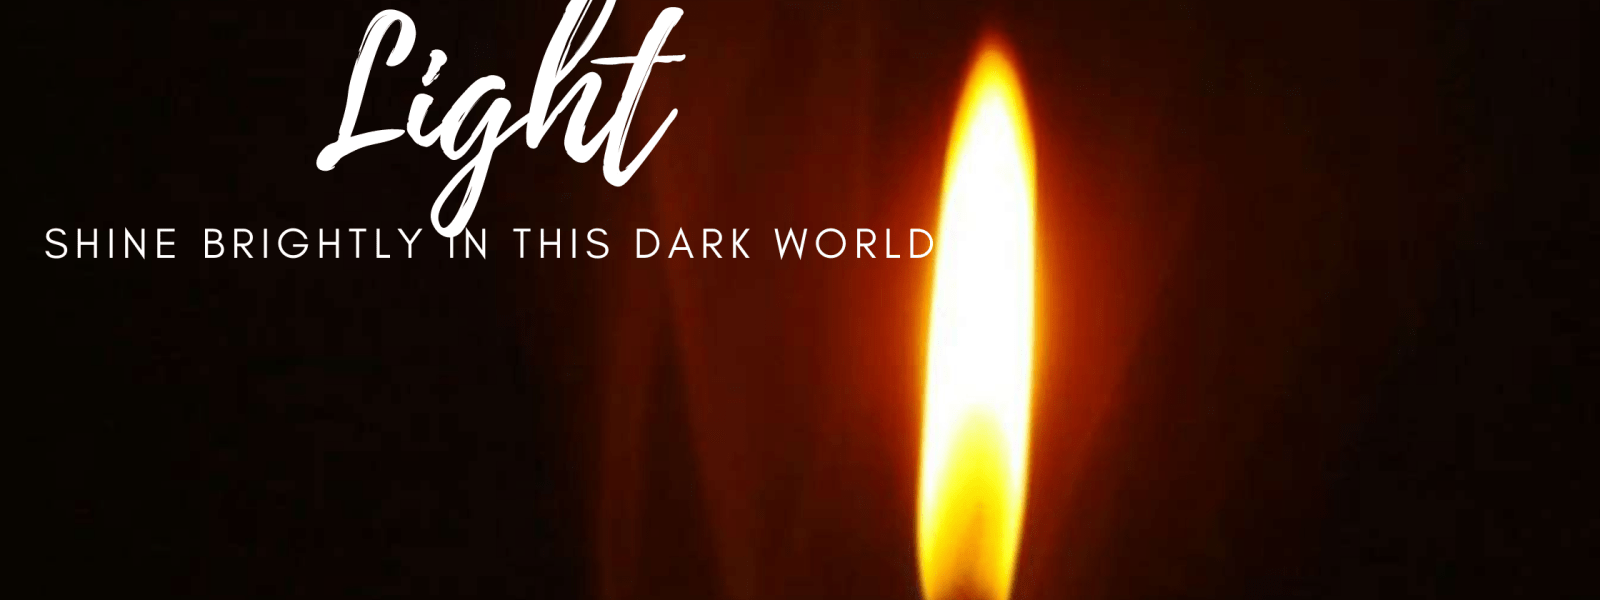 Light: Shine brightly in this dark world